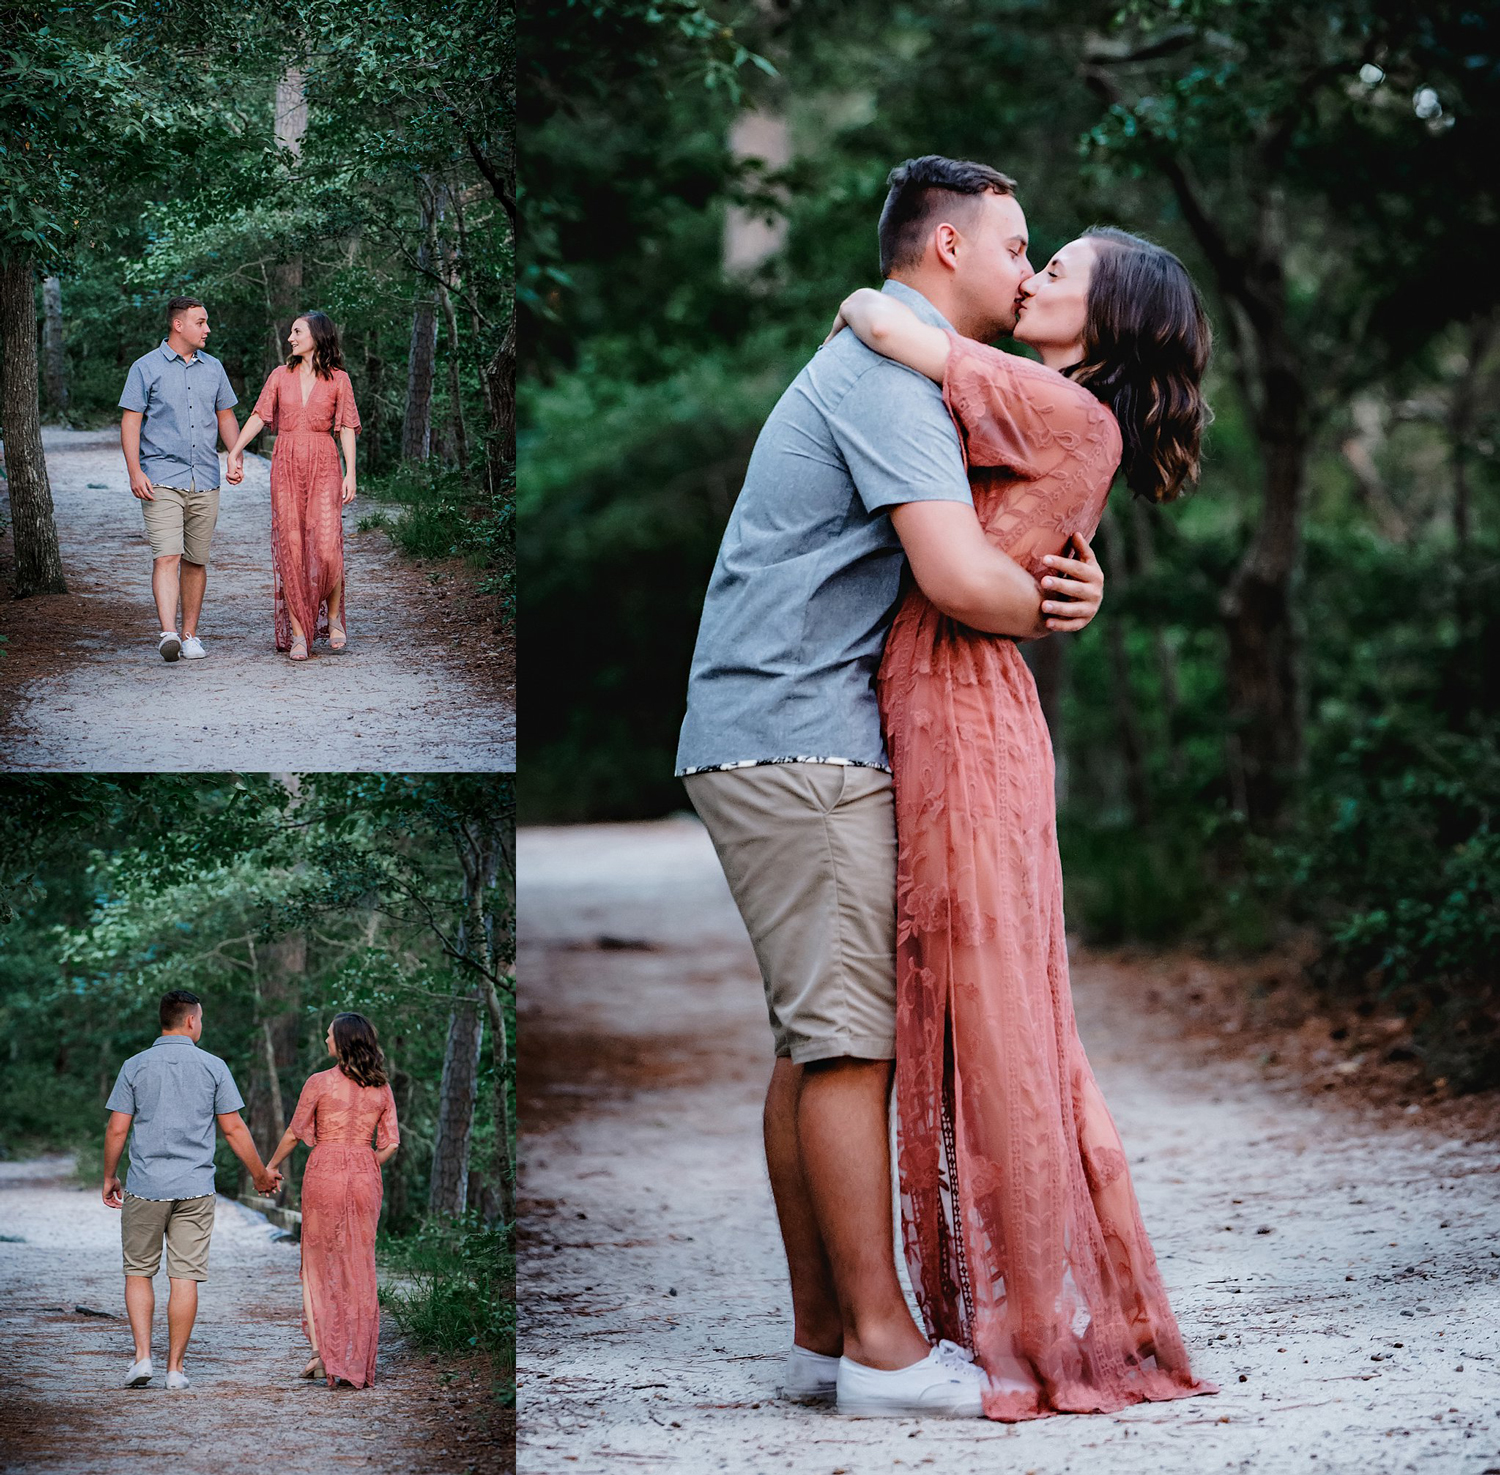 virginia-beach-engagement-photo-shoot-creative-photos-by-melissa-bliss-photography.jpg